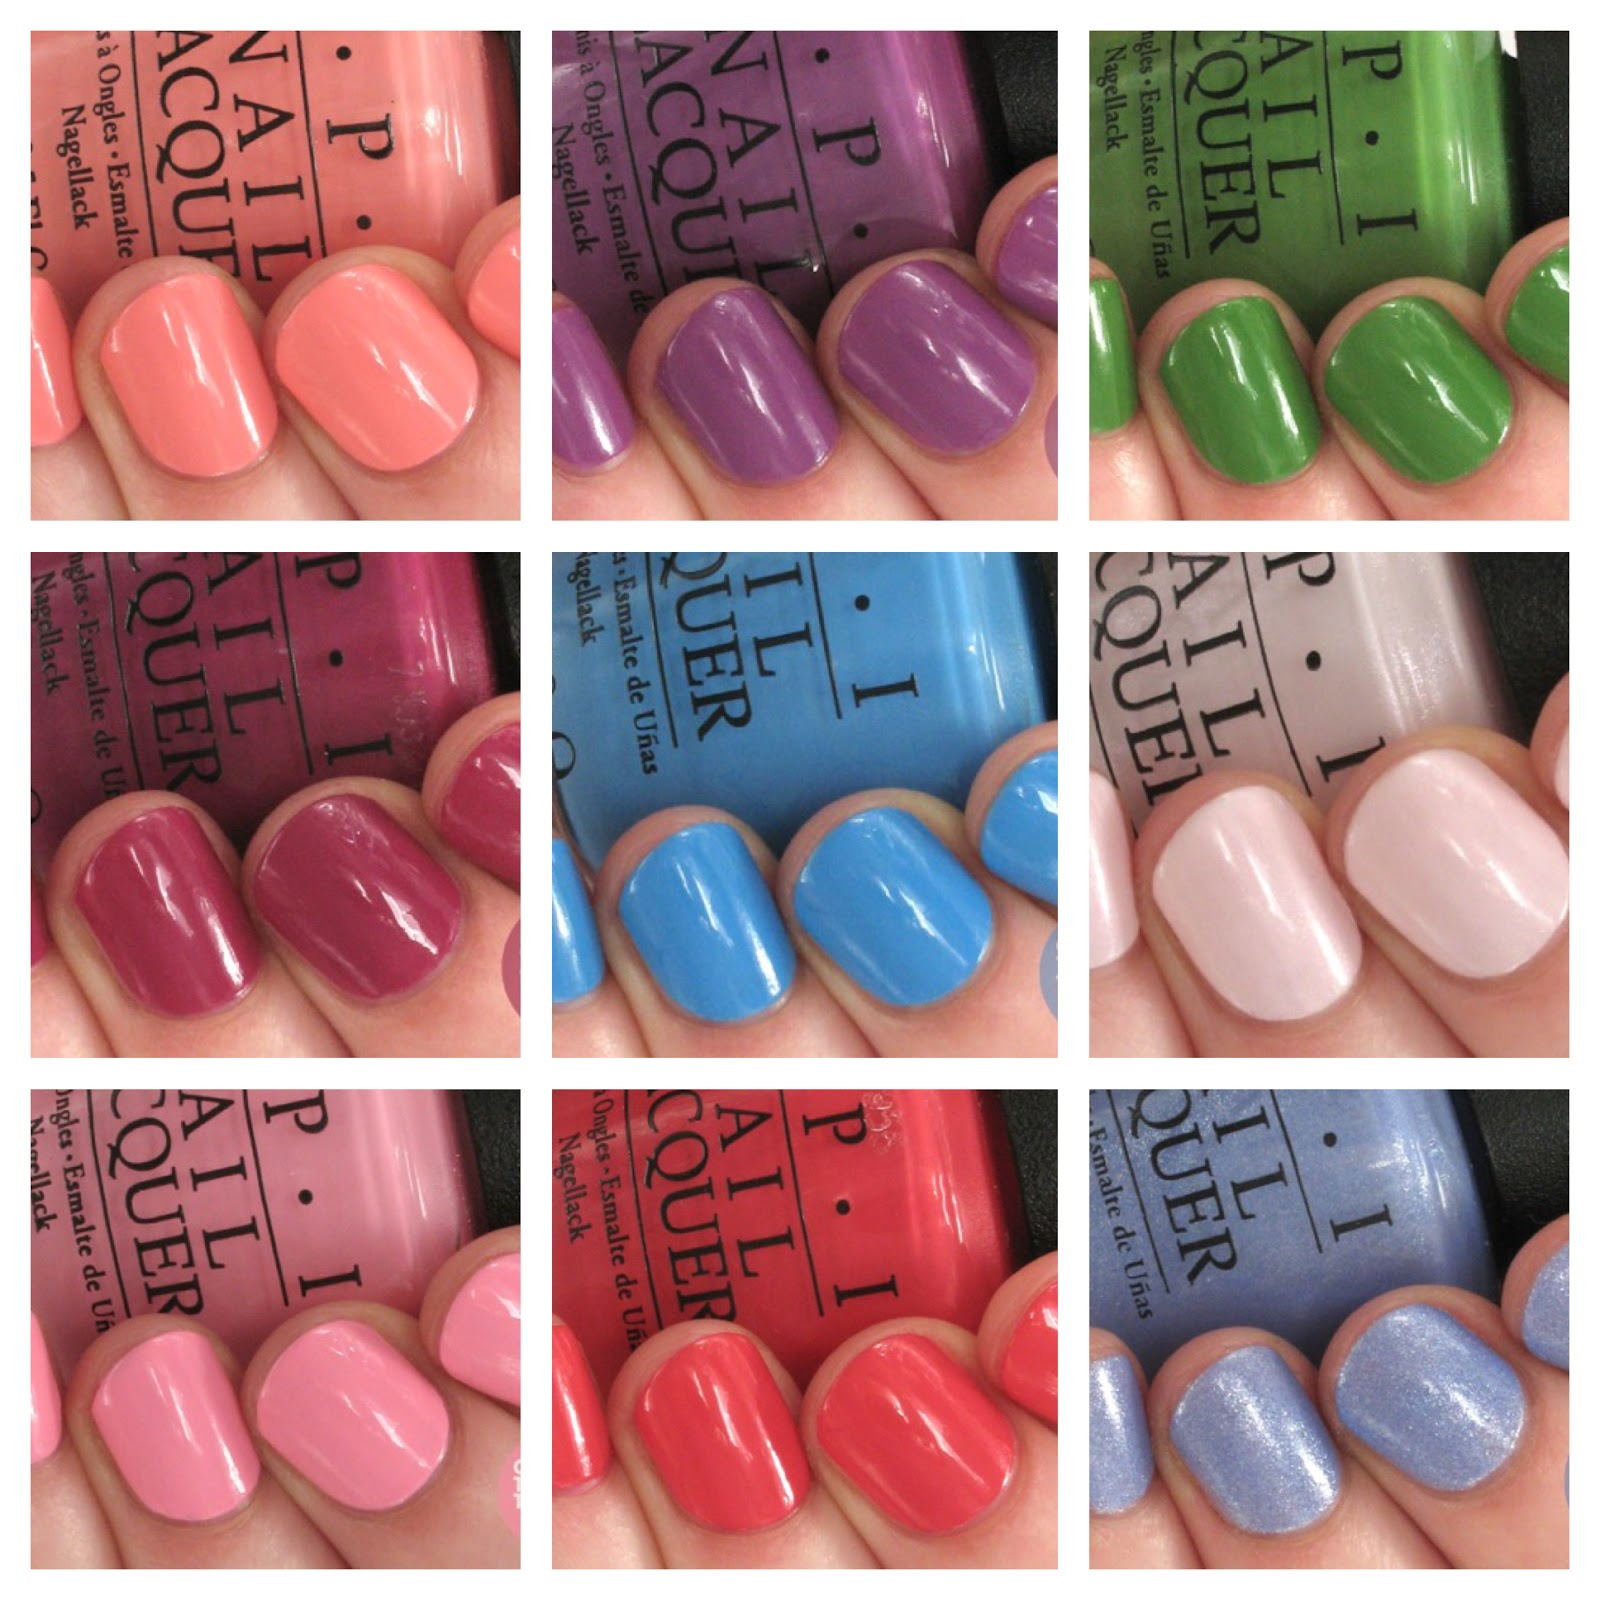 OPI New Orleans Collection Review + Swatches | One Nail To Rule Them ...